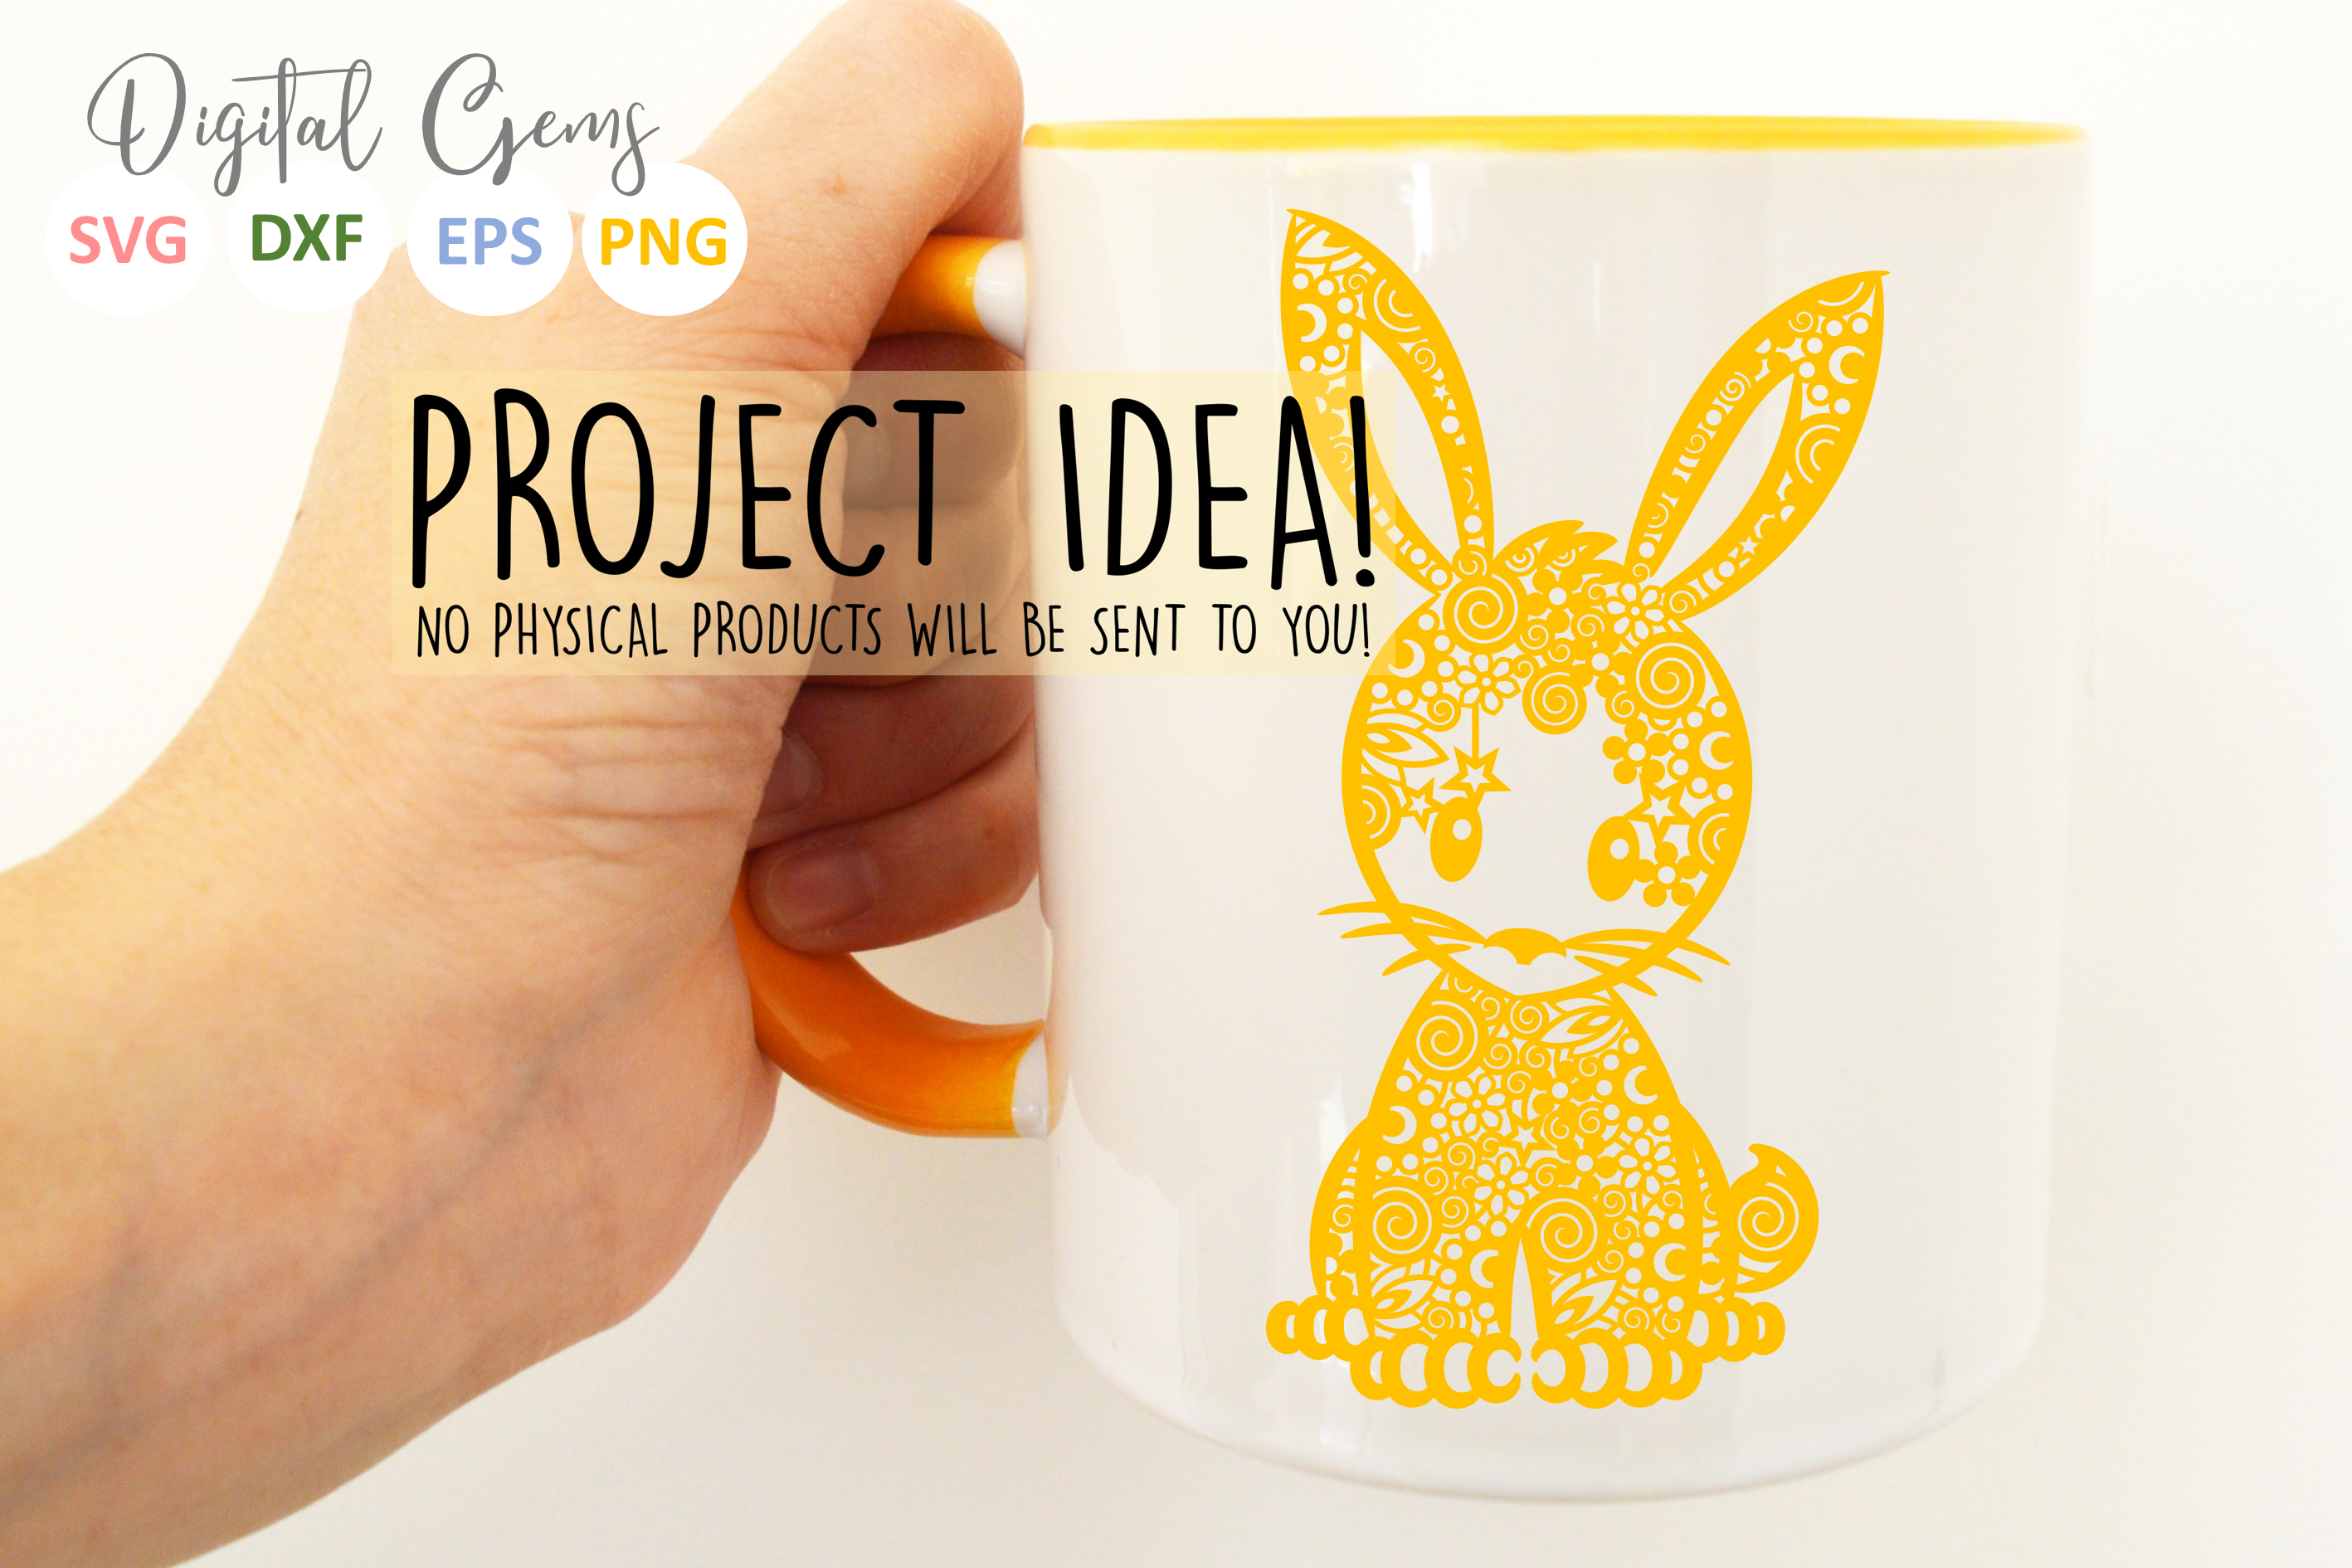 Bunny Rabbit paper cut SVG / DXF / EPS / PNG files example image 3